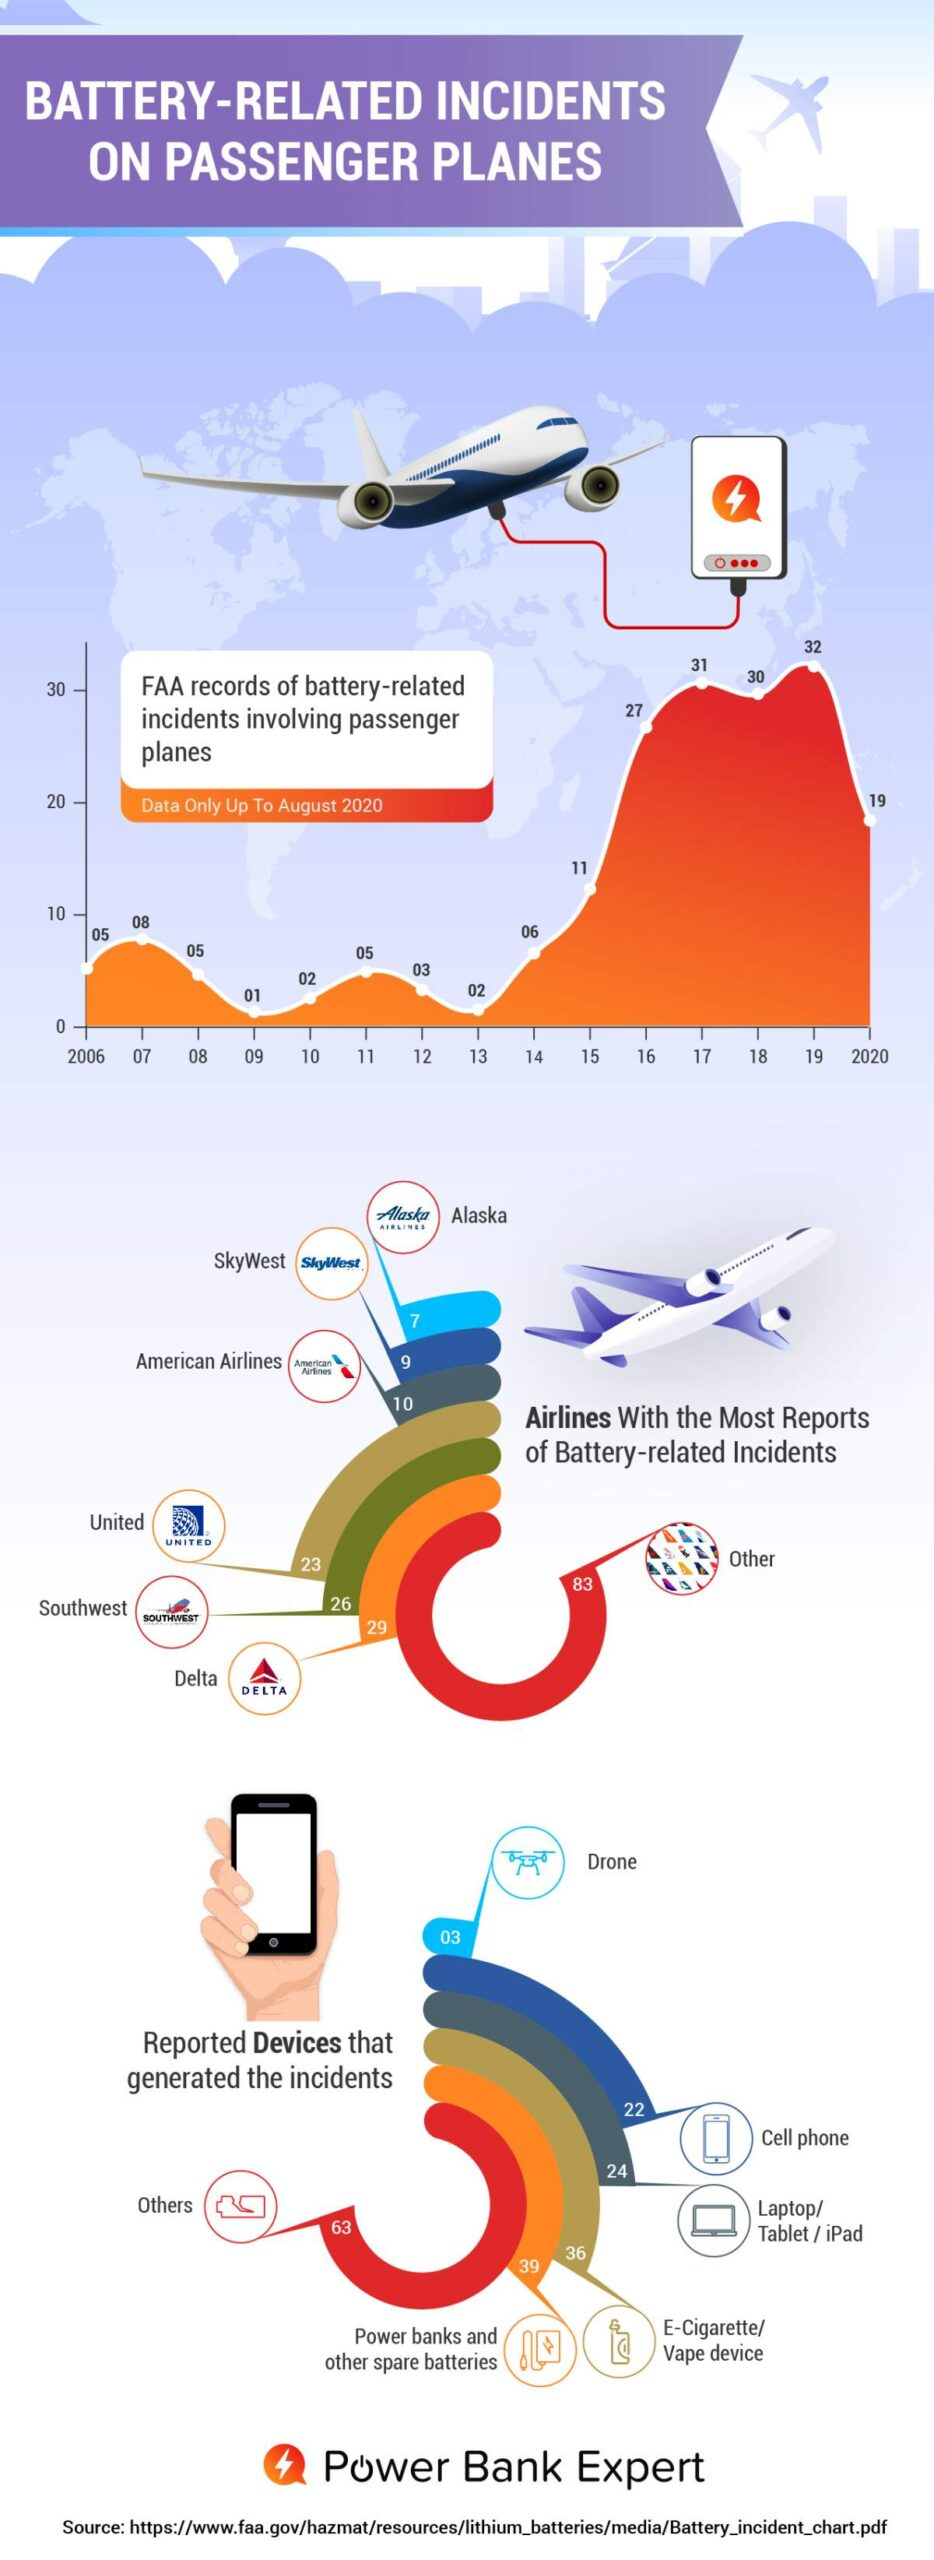 Battery-related incidents on passenger planes